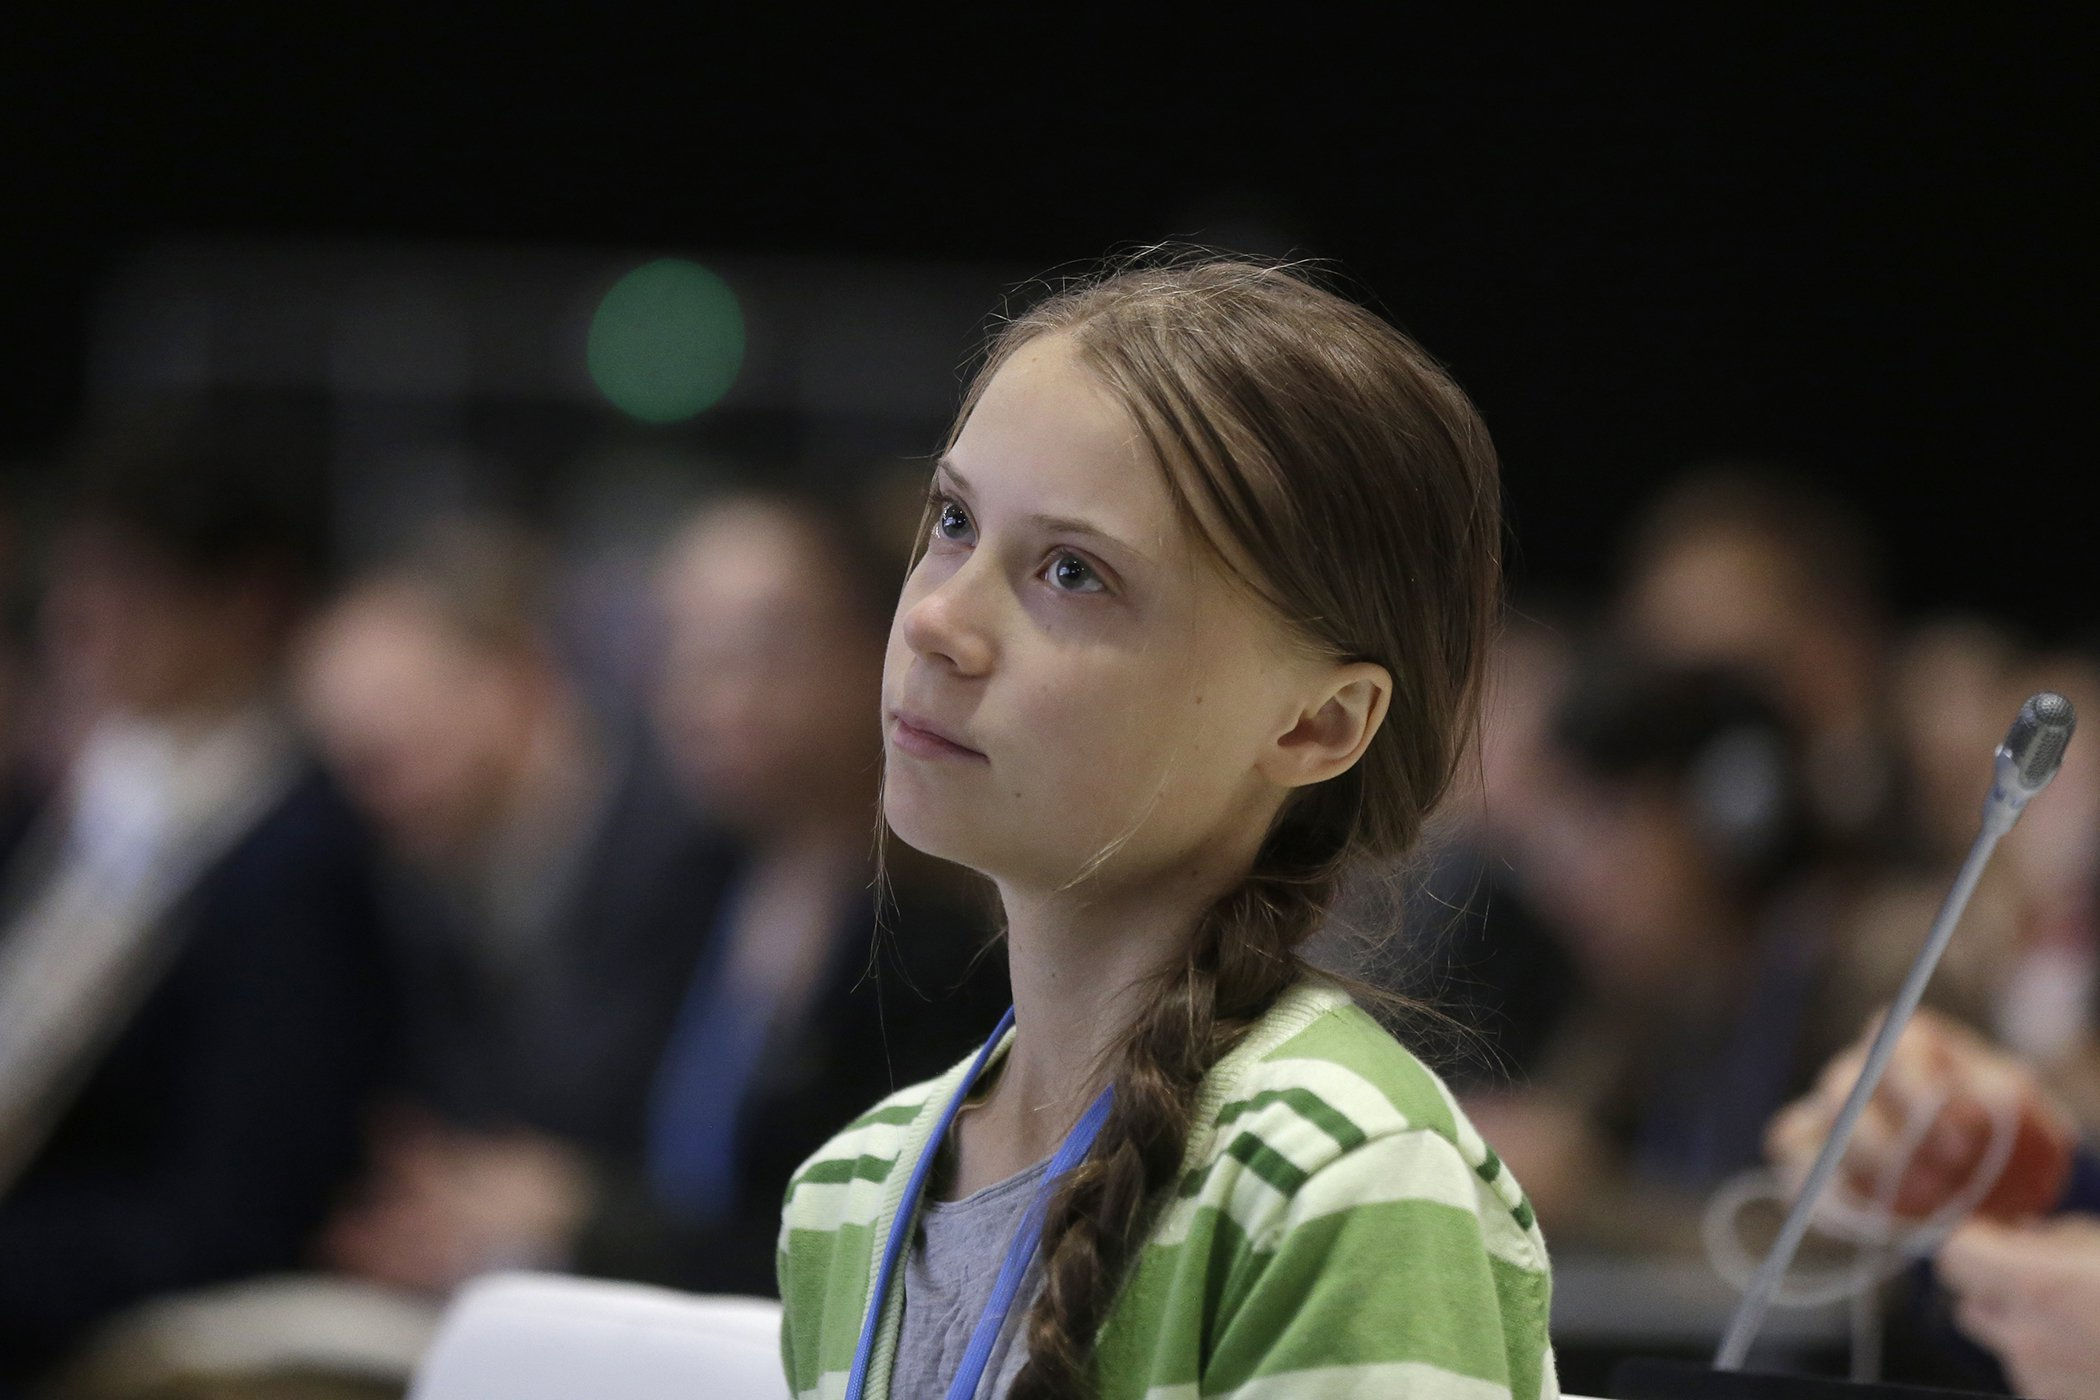 Greta Thunberg Is Using Her Award Money to Launch a Climate Foundation